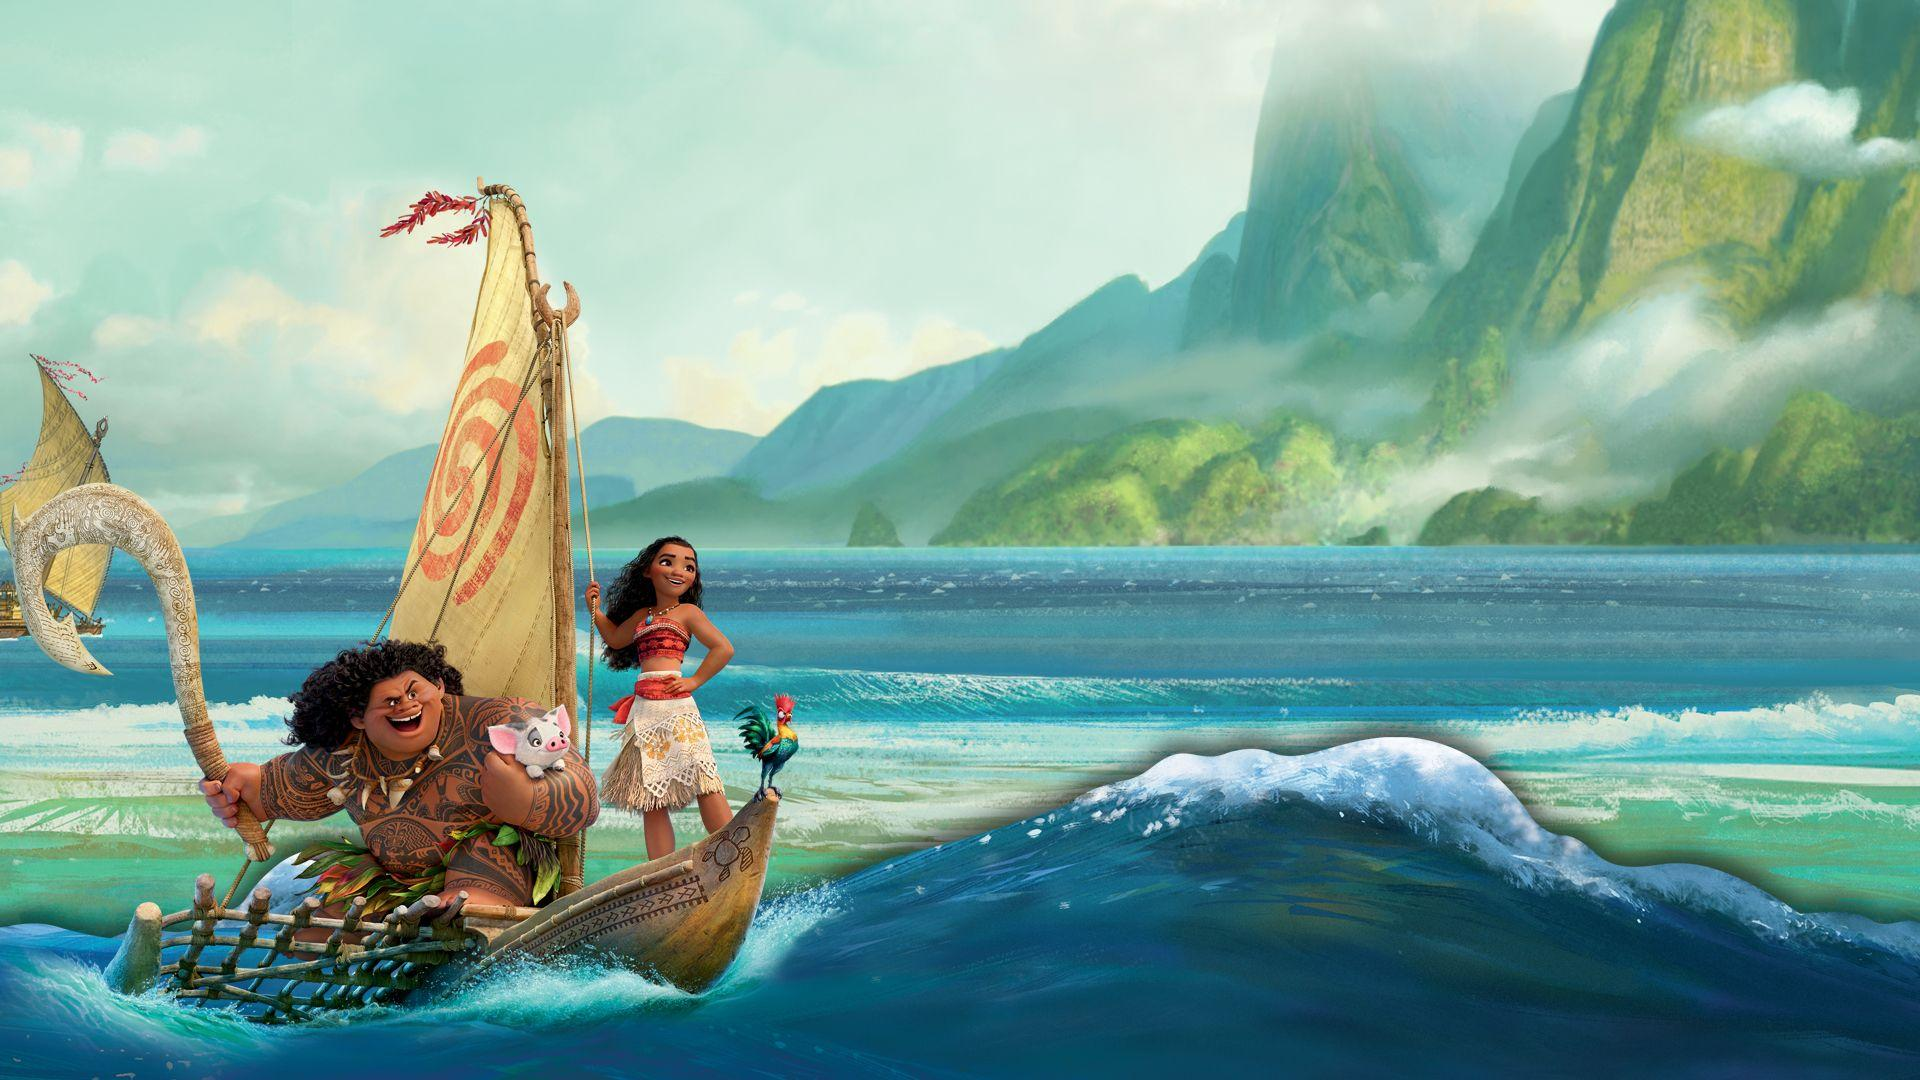 Moana Disney Wallpapers - My Free Wallpapers Hub